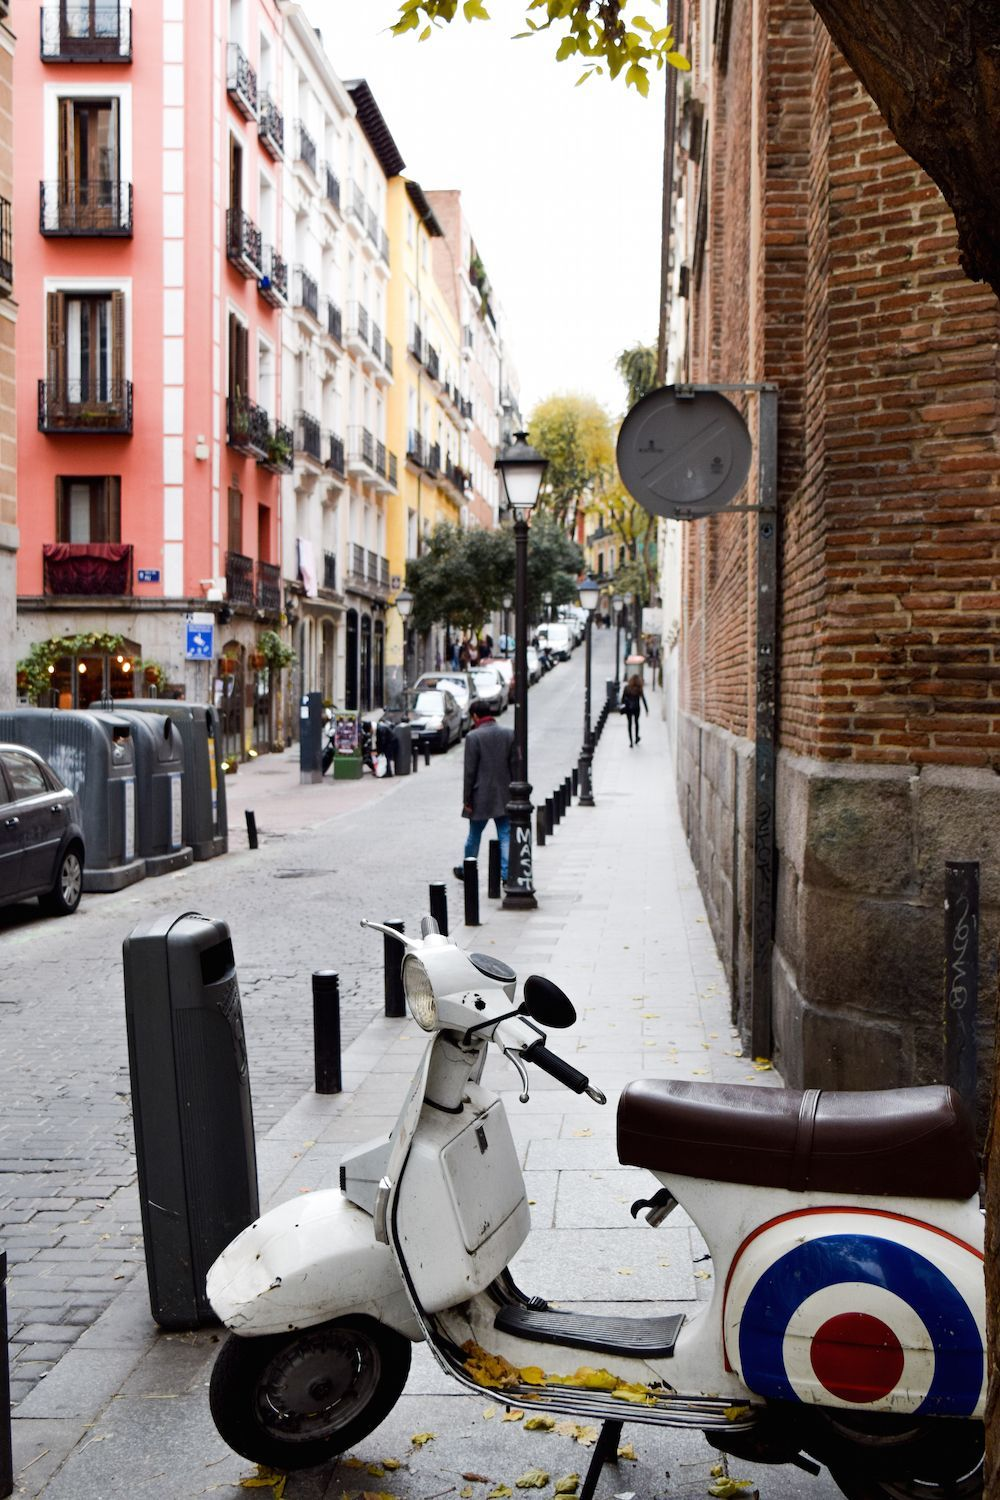 Scooter in Malasaña, Madrid